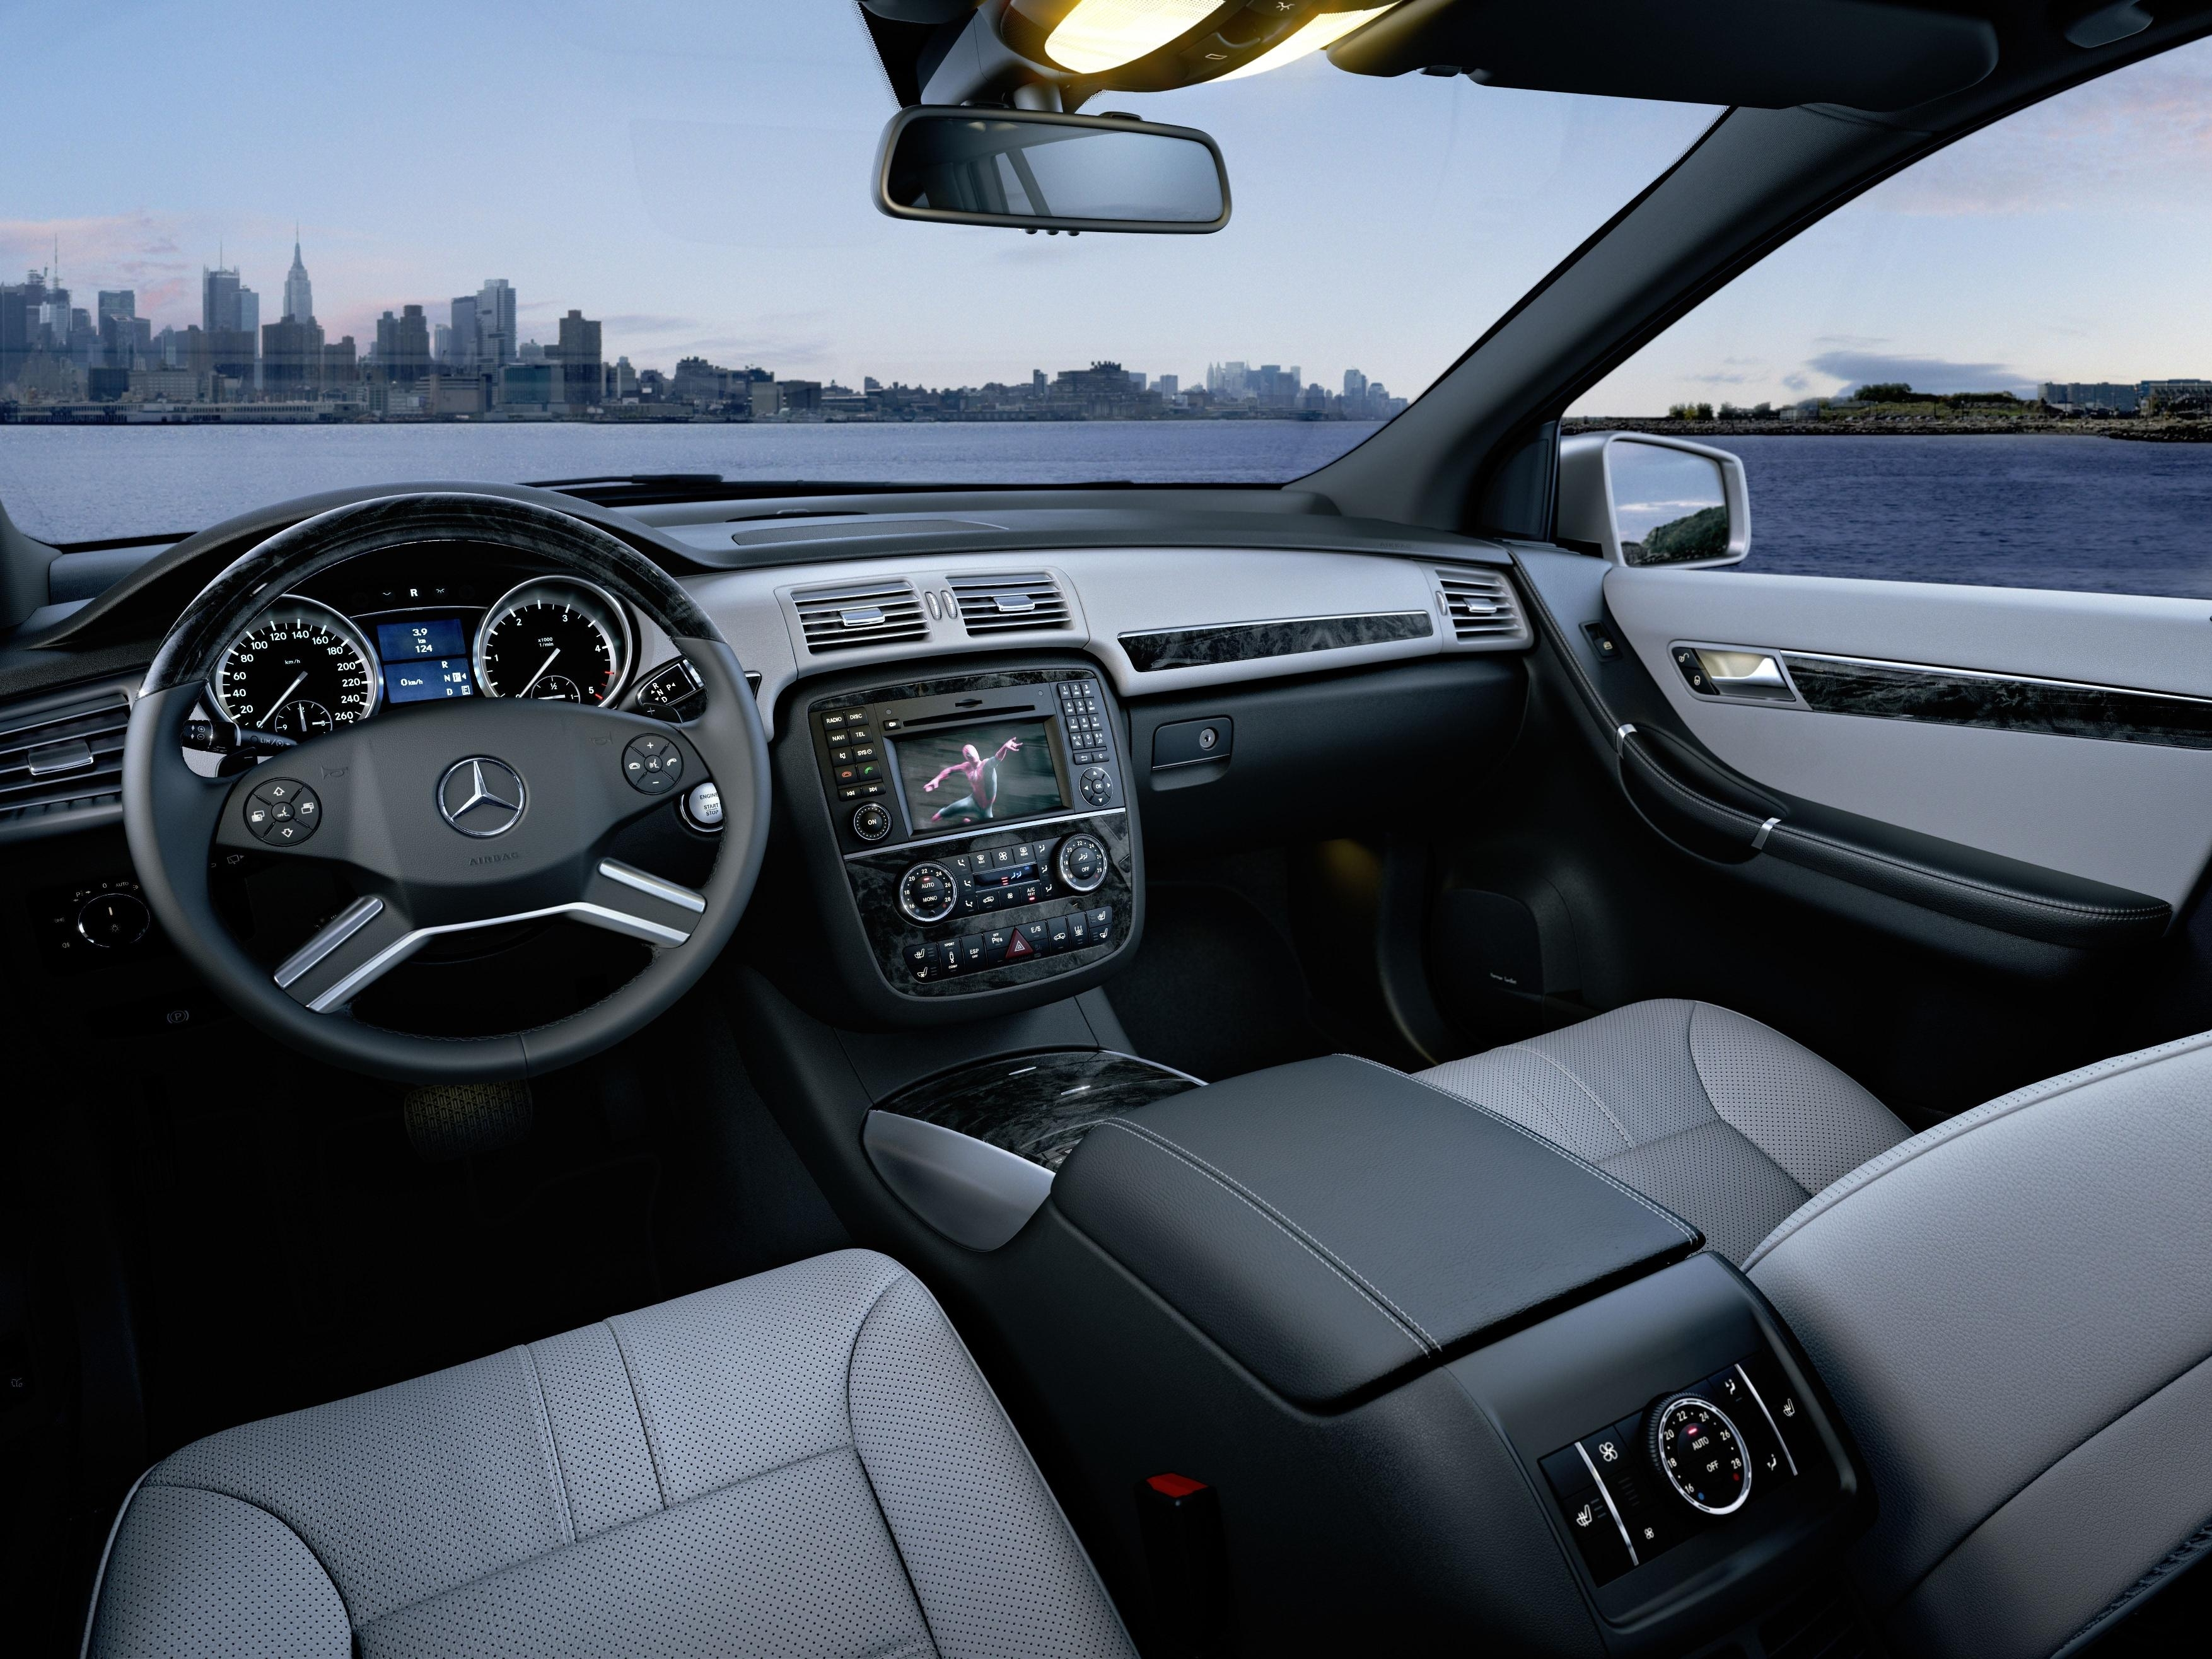 cars interior car interiors HD Wallpaper